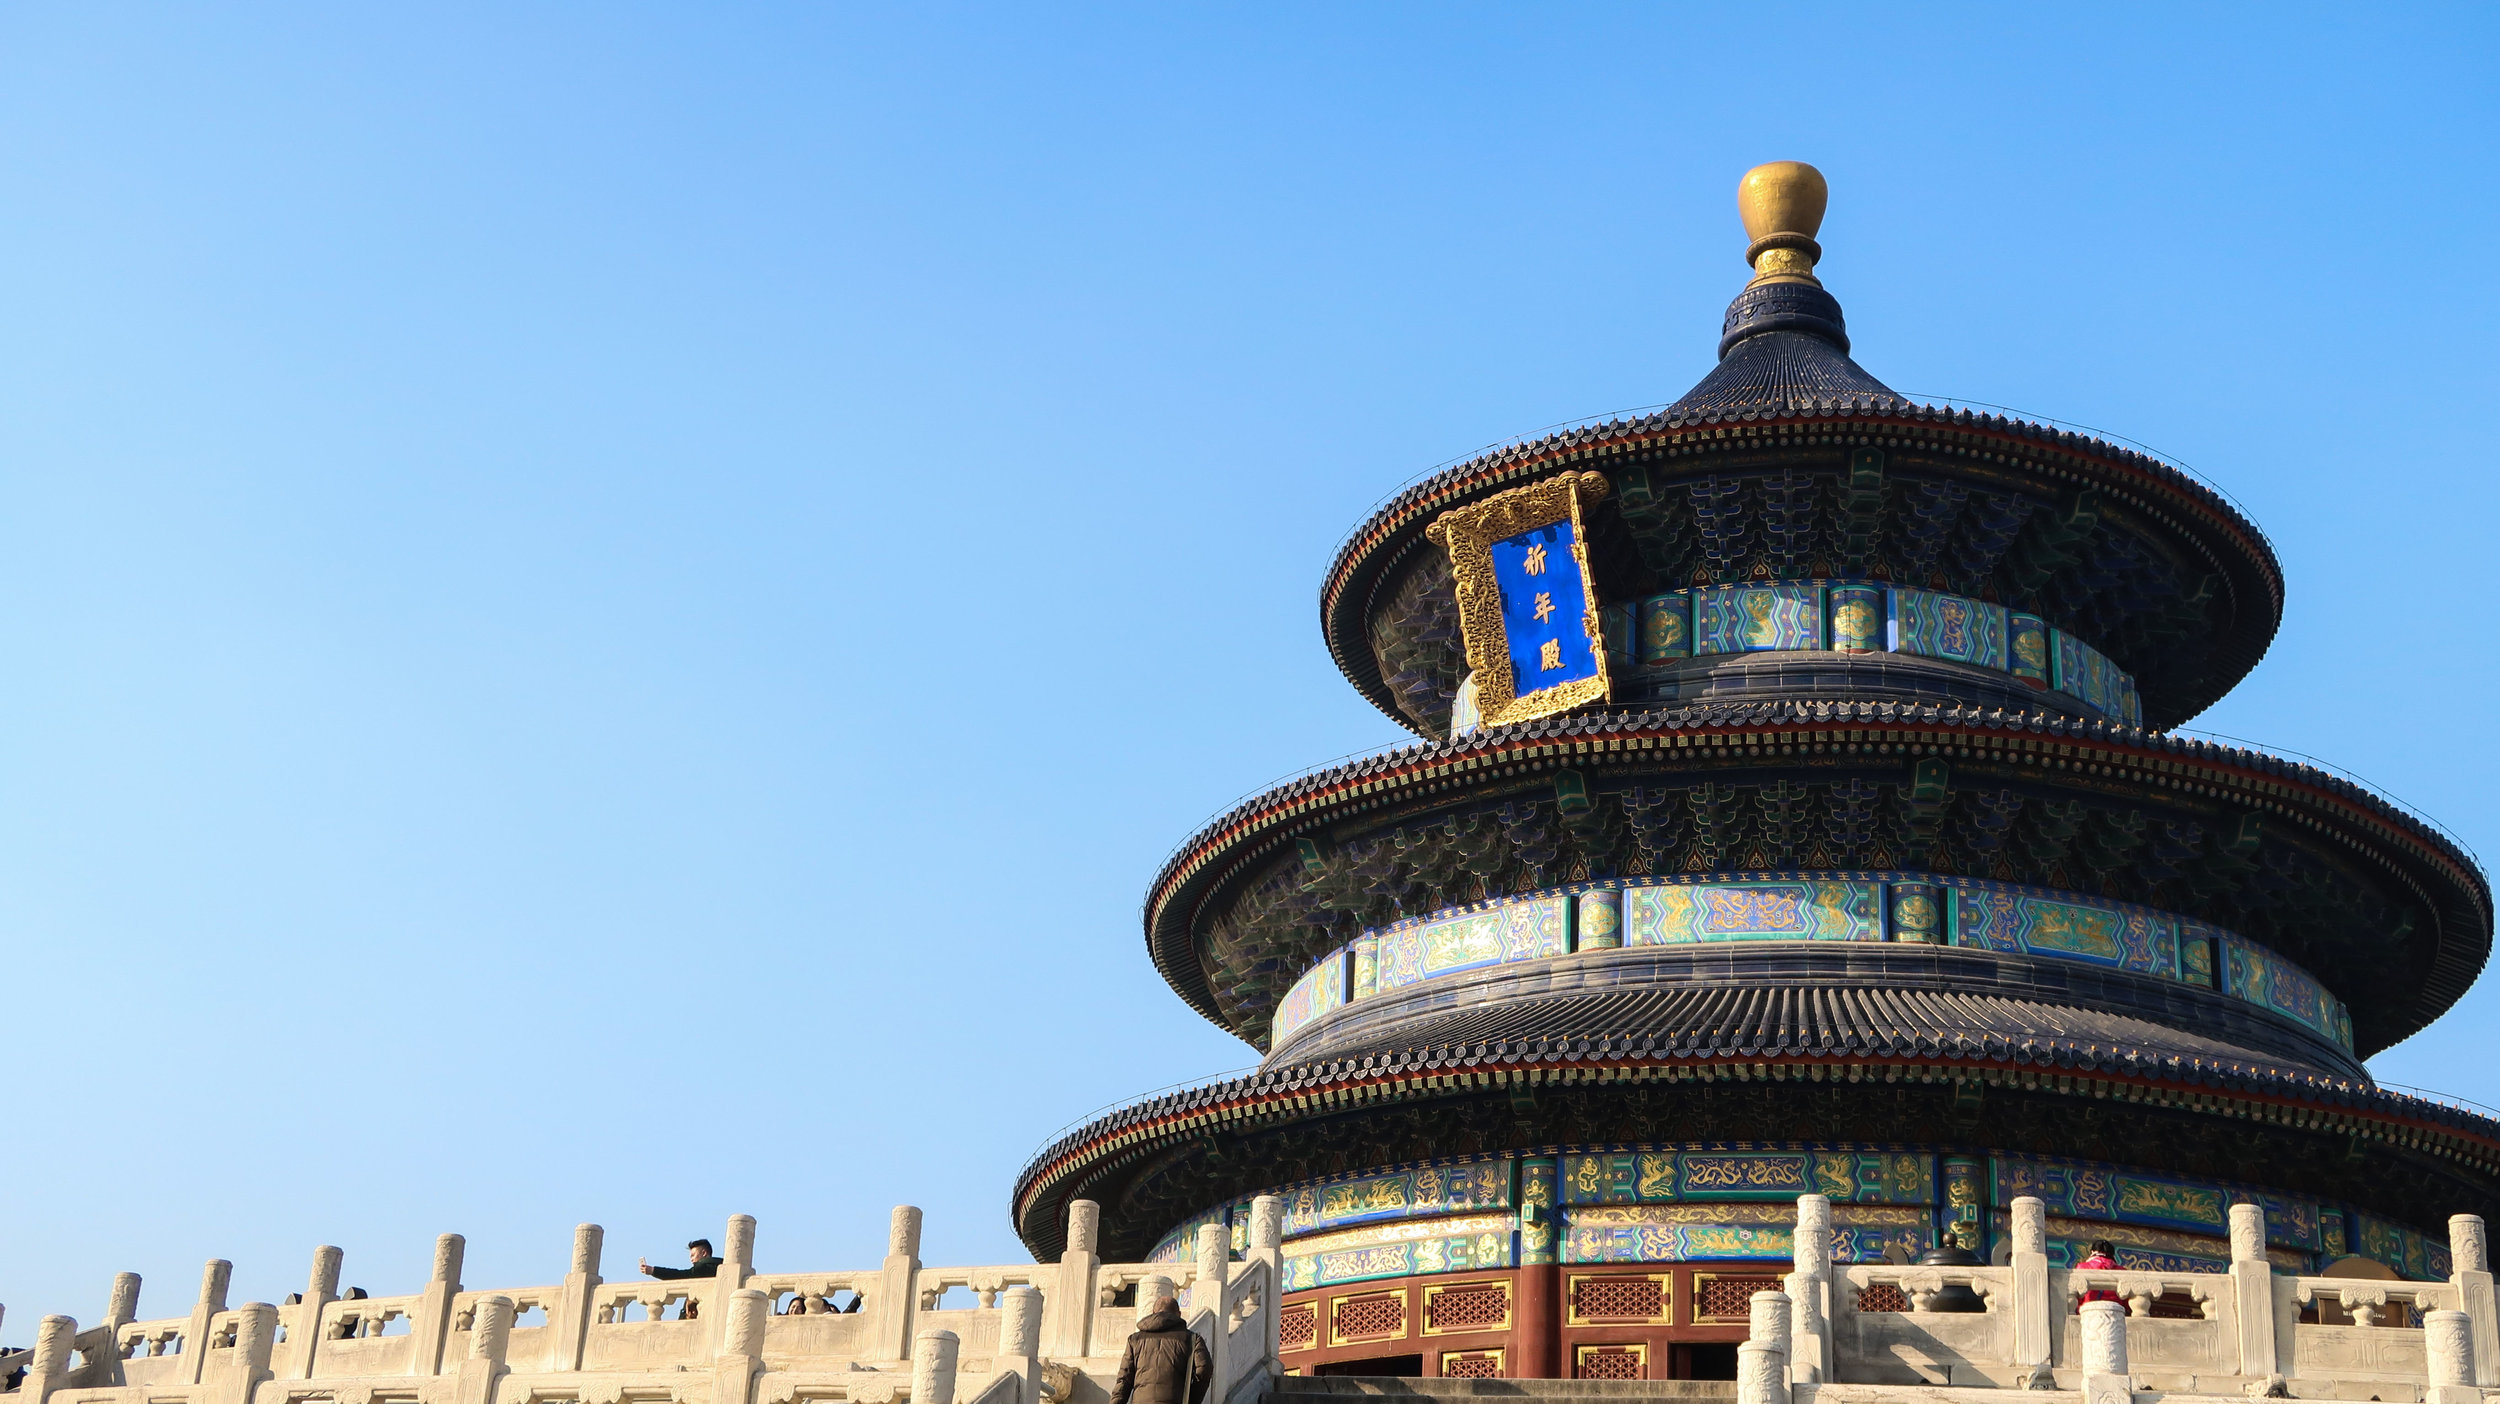 Beijing, China: Temple of Heaven